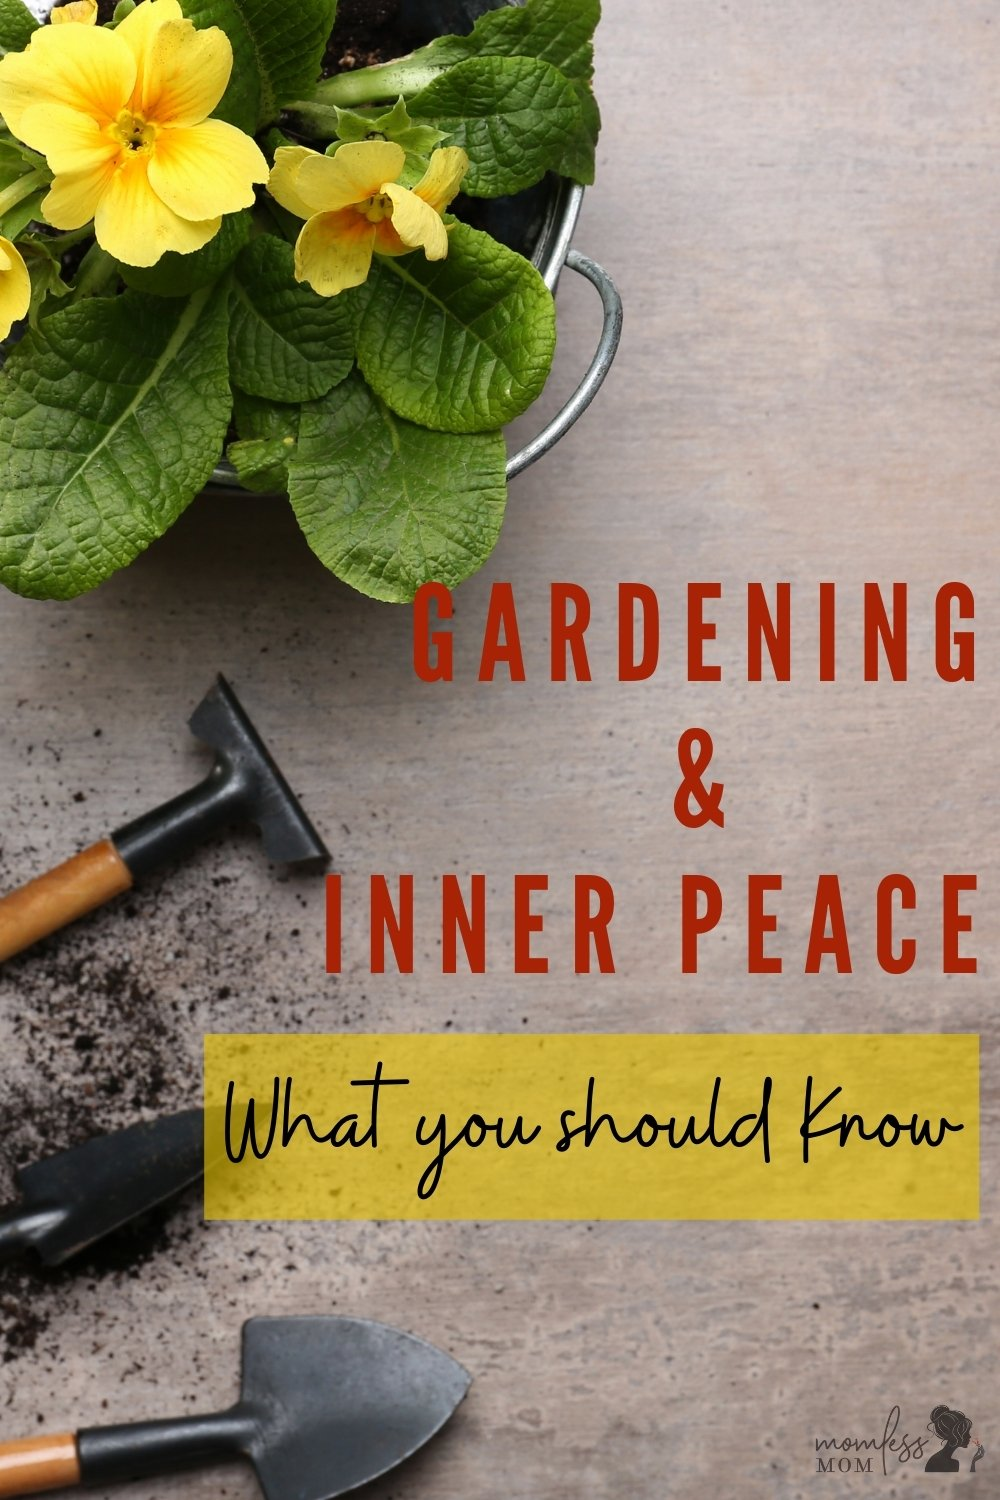 Create inner peace with Gardening